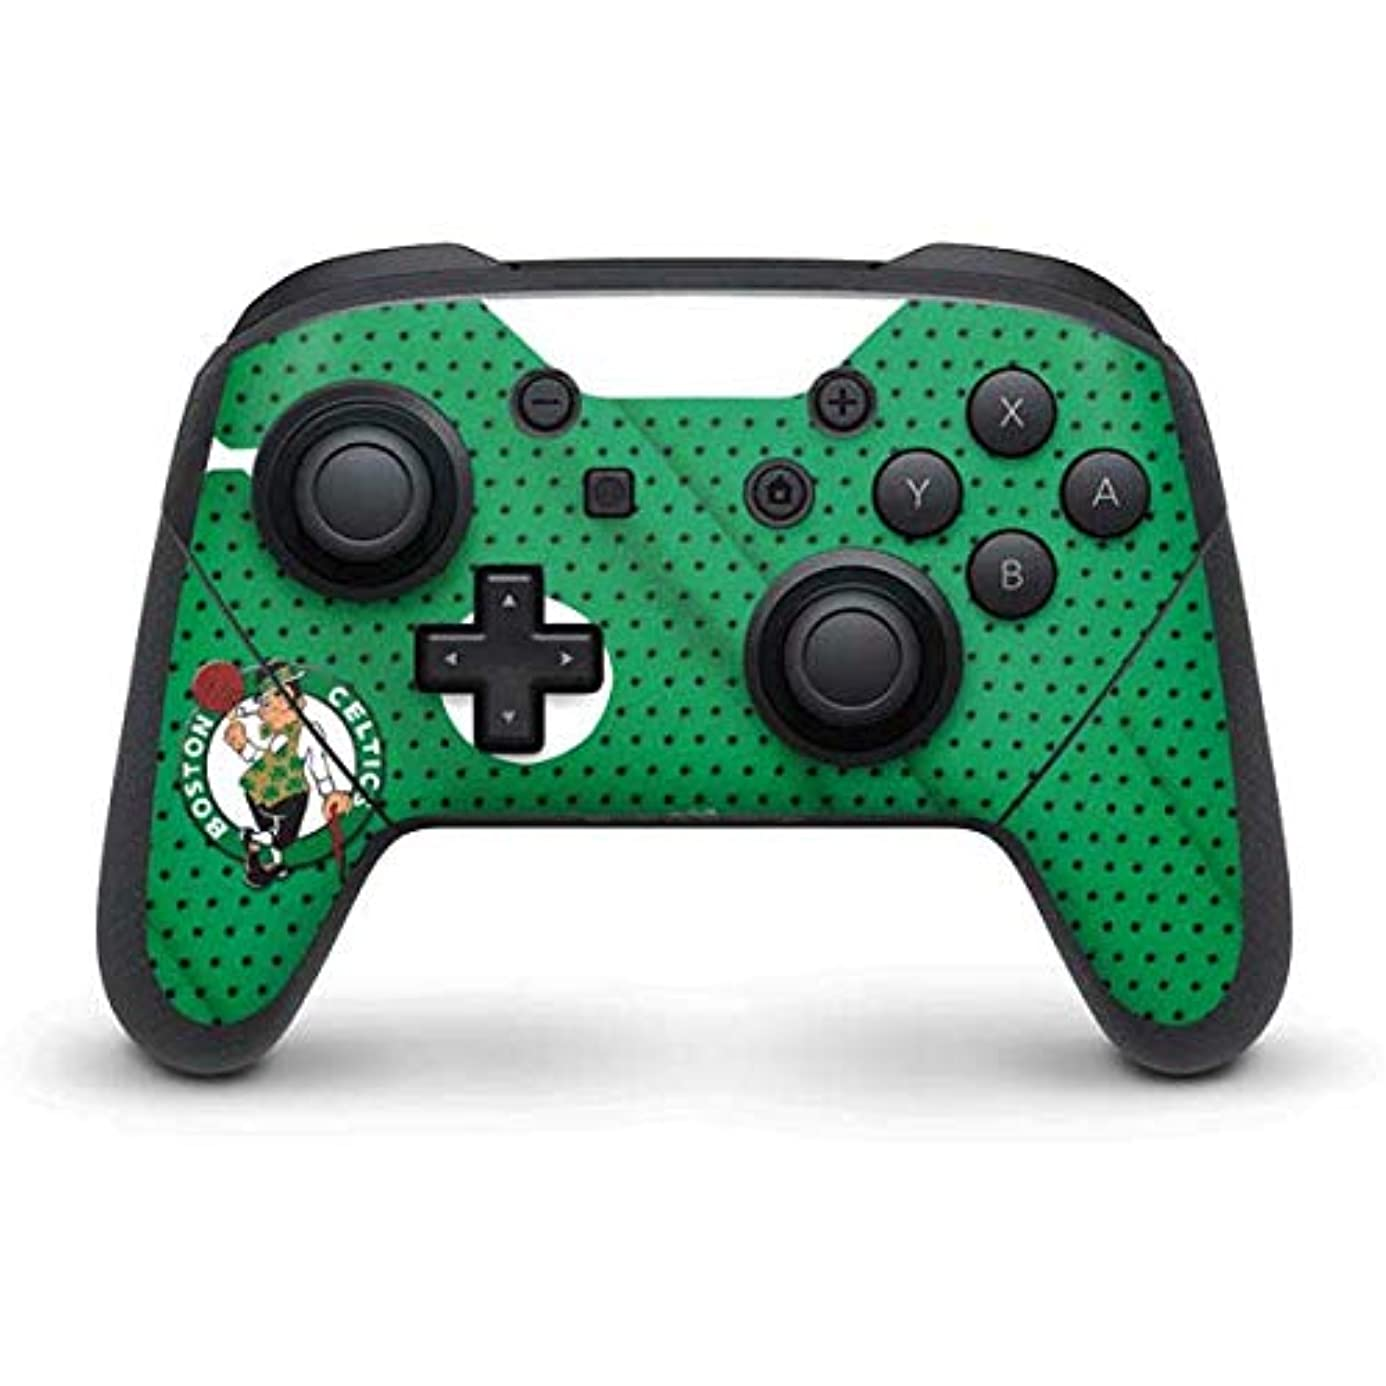 Skinit Boston Celtics Nintendo Switch Pro Controller Skin - Officially Licensed NBA Gaming Decal - Ultra Thin, Lightweight Vinyl Decal Protection